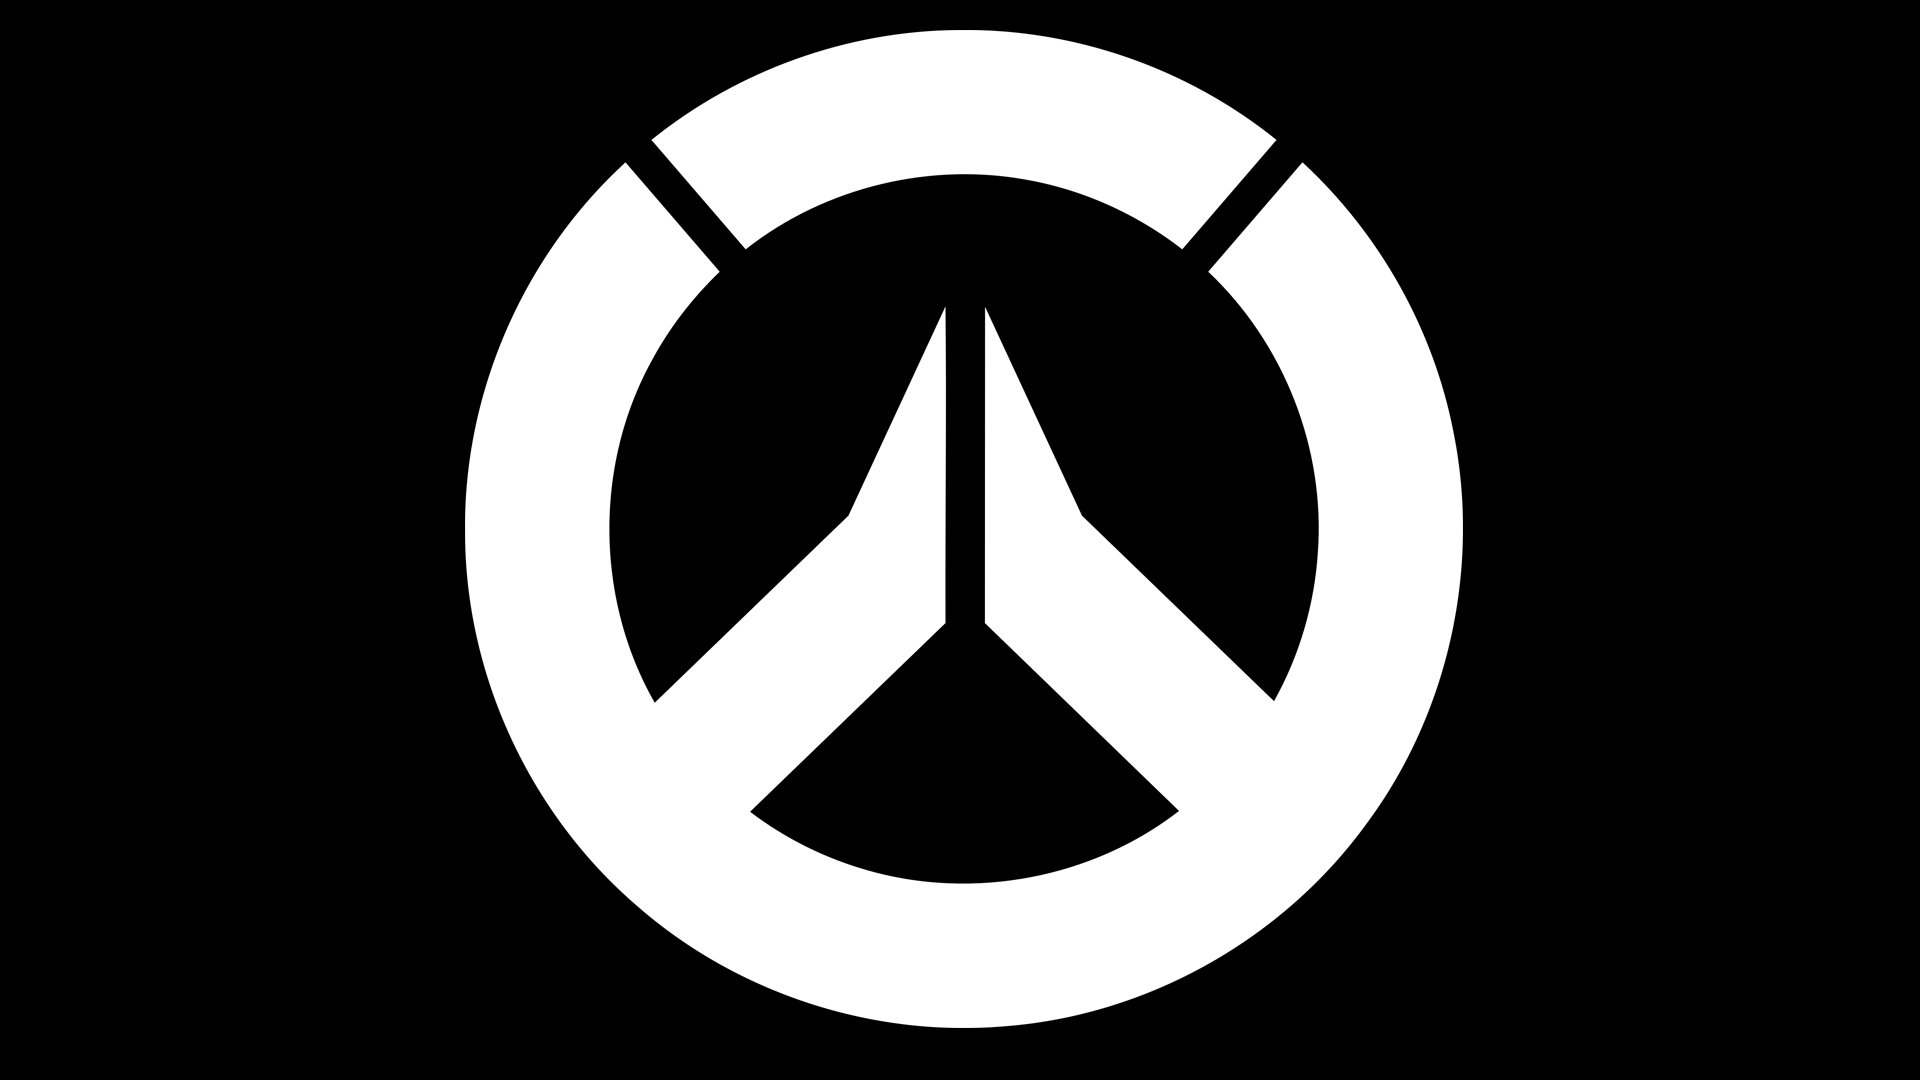 Meaning Overwatch logo and symbol | history and evolution